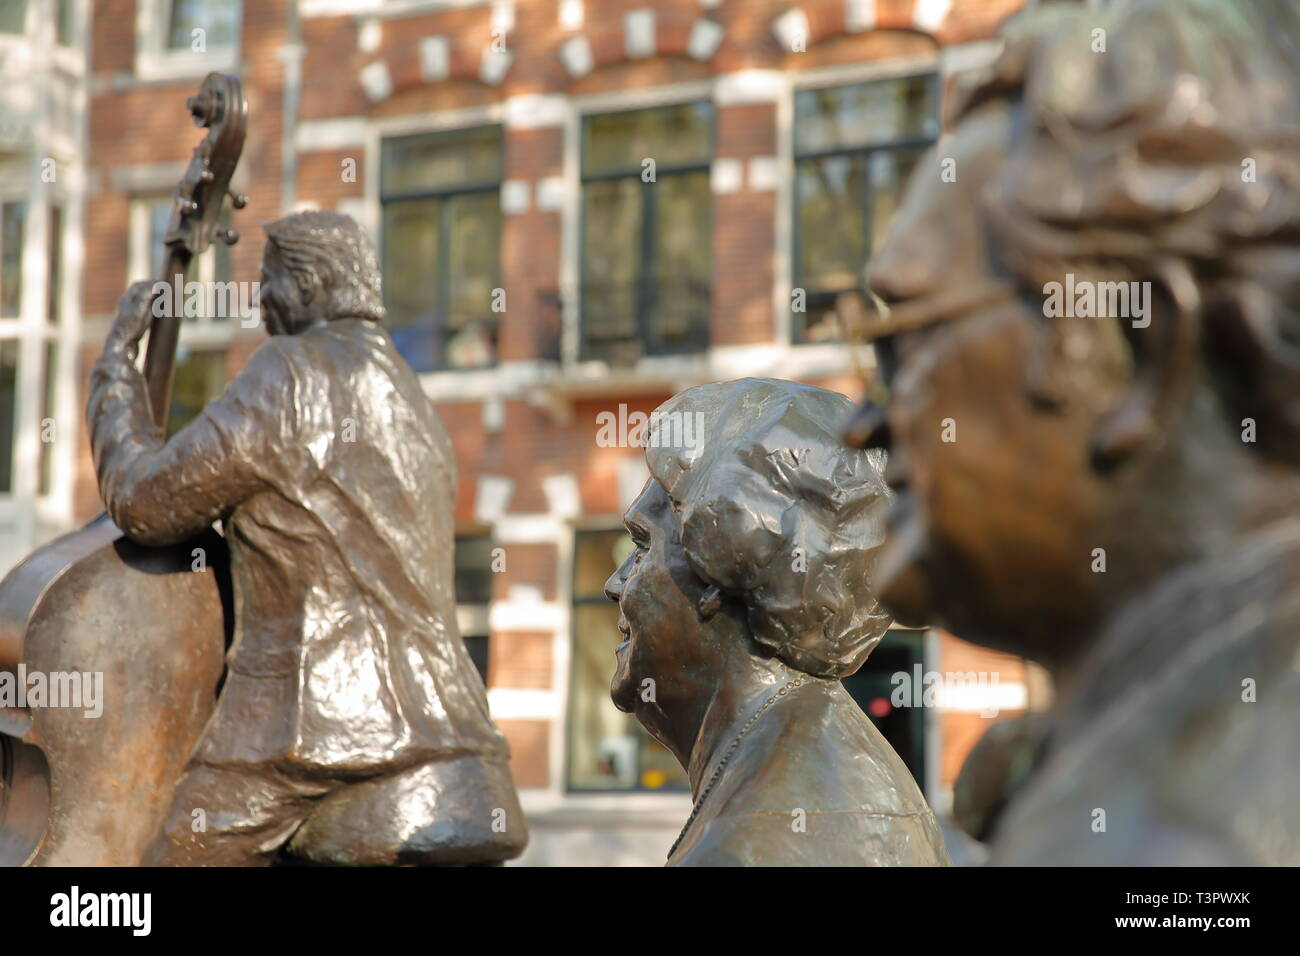 AMSTERDAM, NETHERLANDS - APRIL 05, 2019: Bronze Sculptures of famous Dutch musicians and singers, located on Elandsgracht (close to Prinsengracht cana - Stock Image